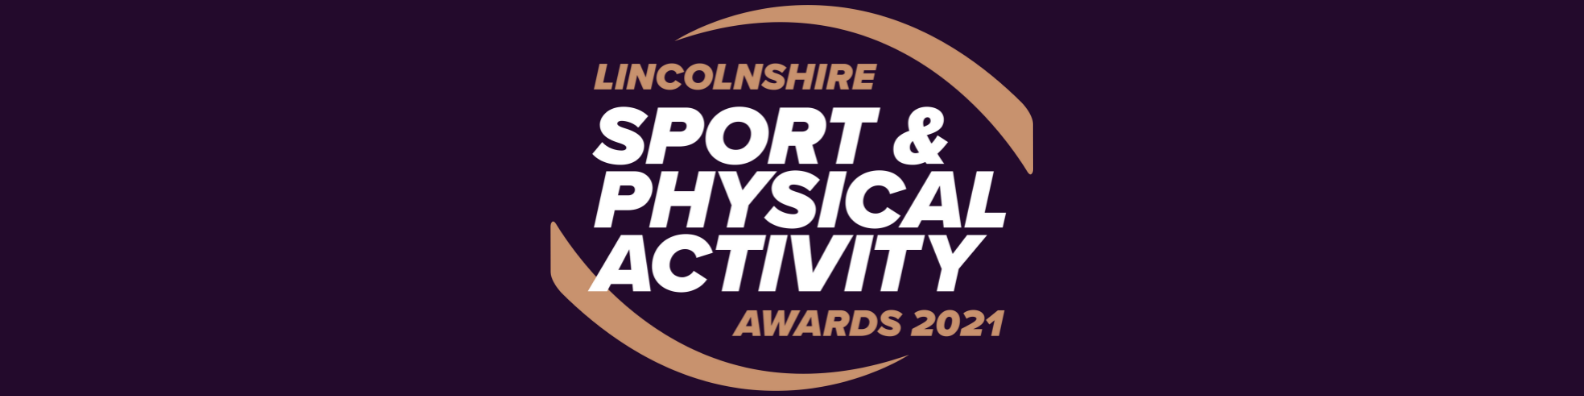 Nominations open for the 2021 Sport & Physical Activity Awards